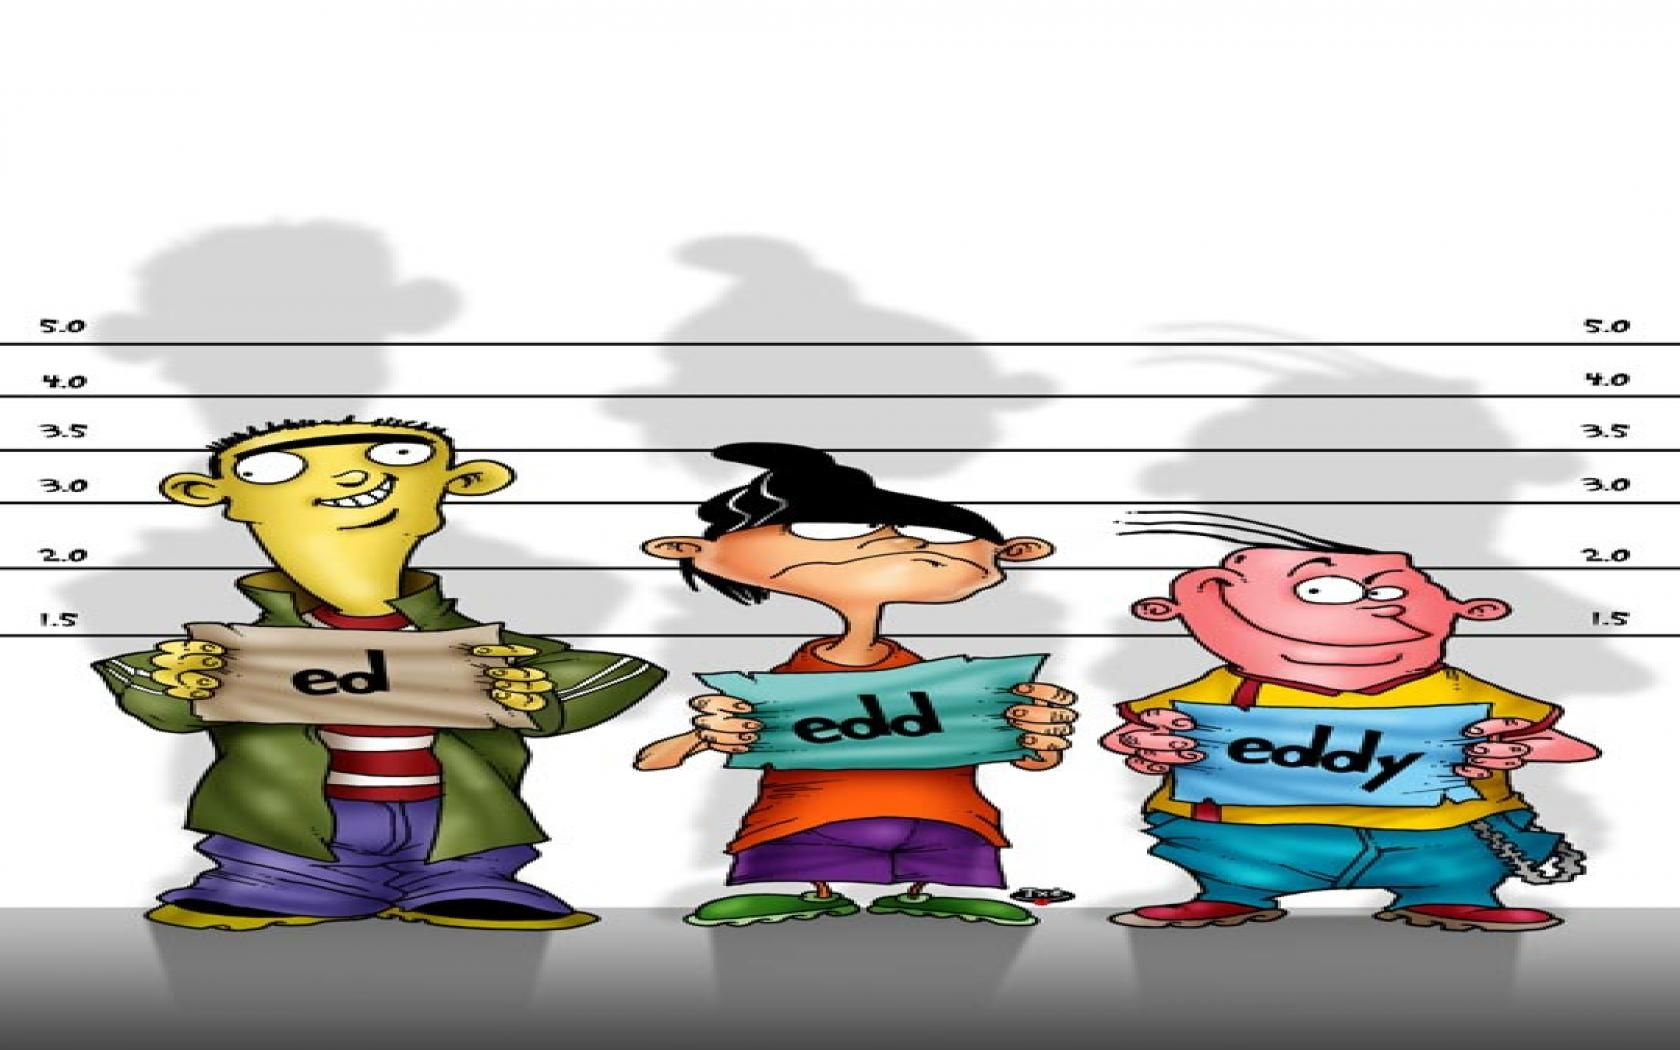 Ed Edd N Eddy Wallpapers Top Free Ed Edd N Eddy Backgrounds